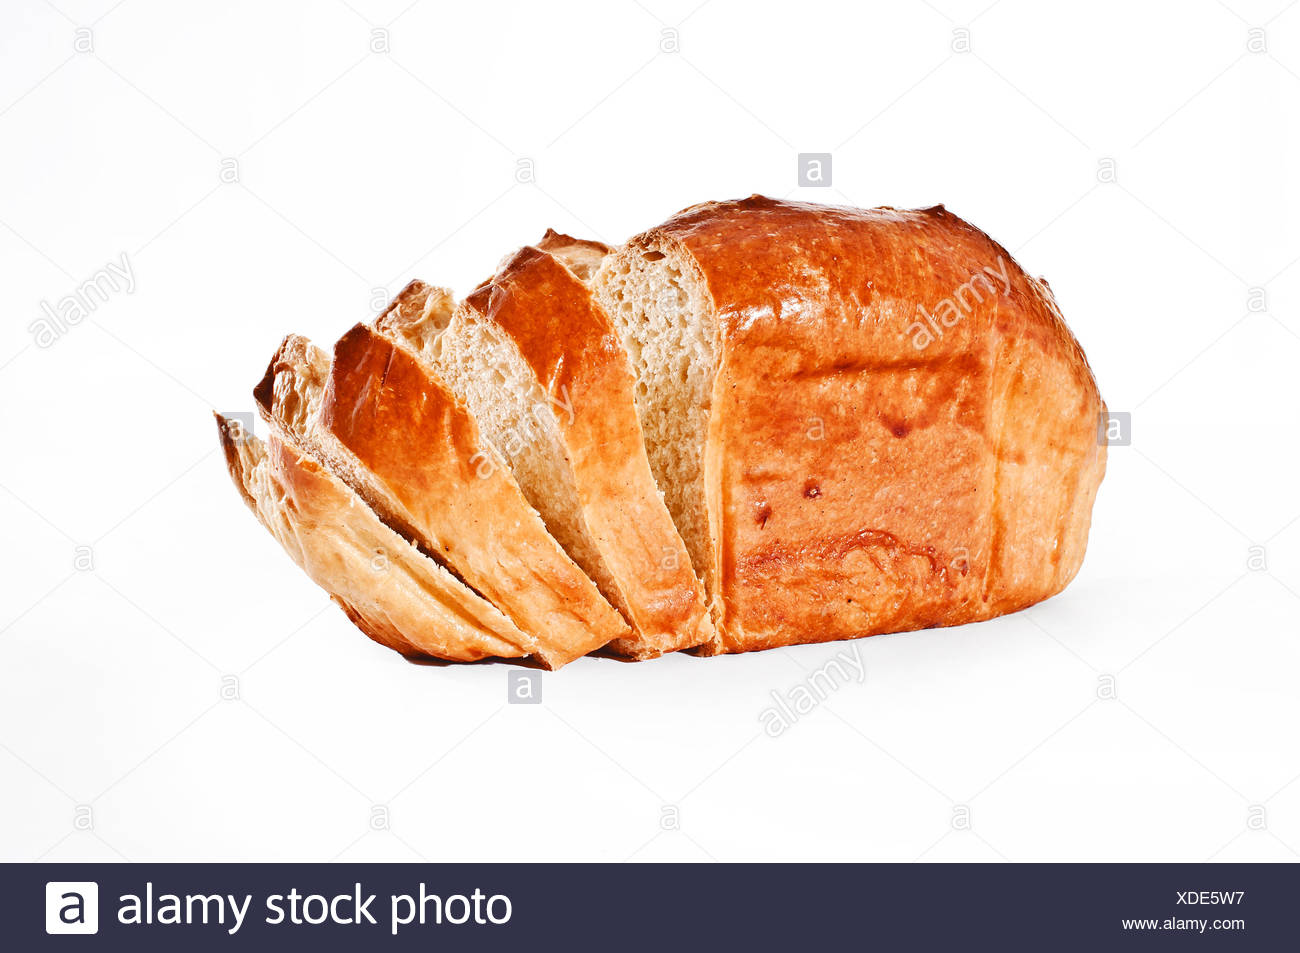 Bred - Stock Image